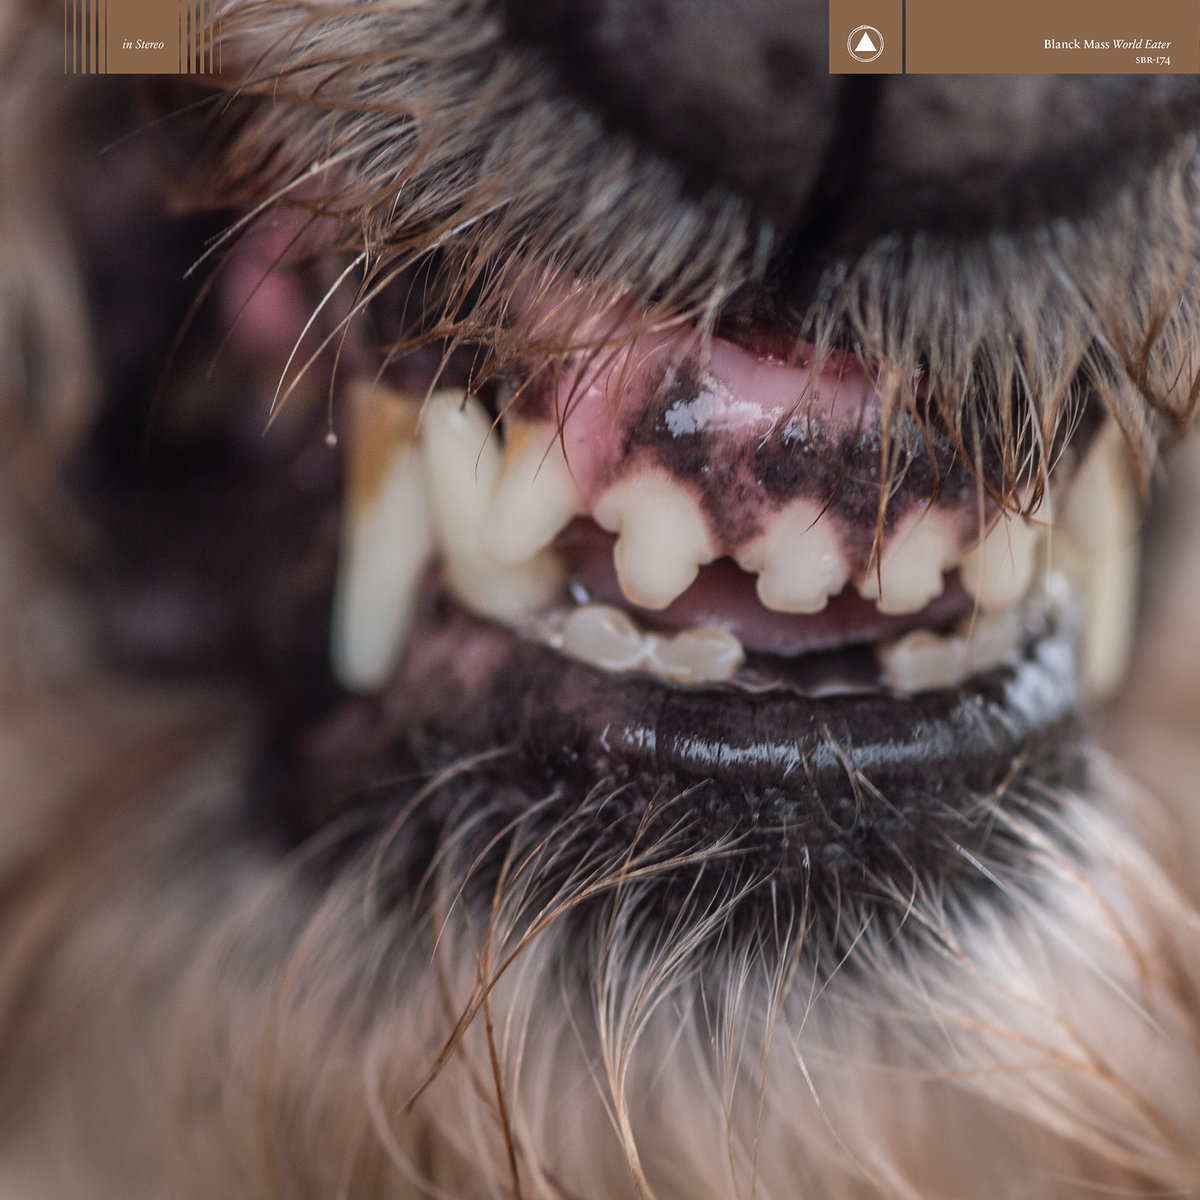 Blanck Mass World Eater